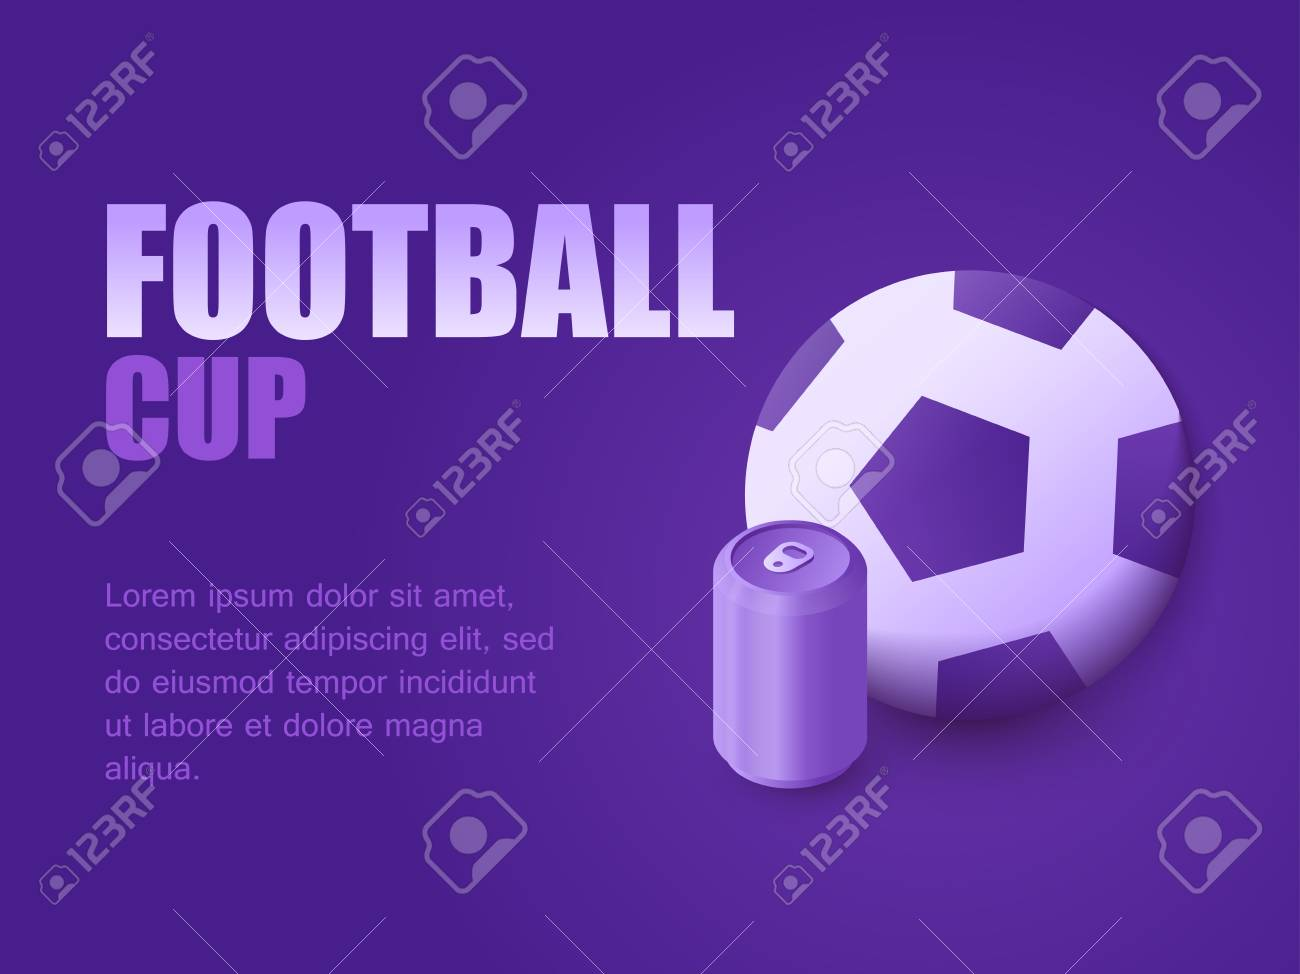 Graphic Design Background Perspective Football Game Live Vector